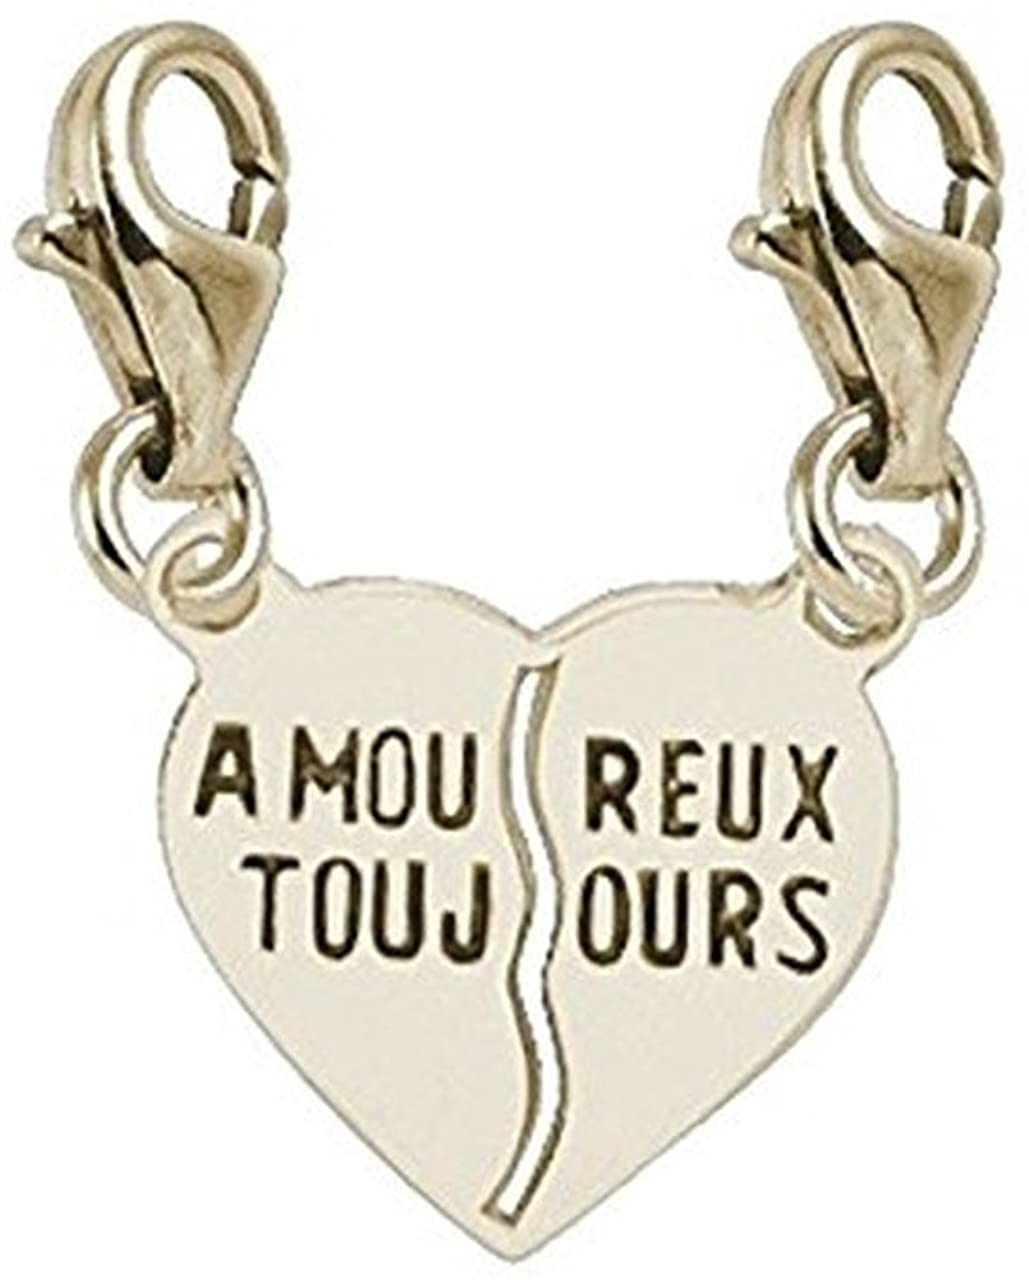 10k Yellow Gold Amoureux Toujours Charm With Lobster Claw Clasp, Charms for Bracelets and Necklaces